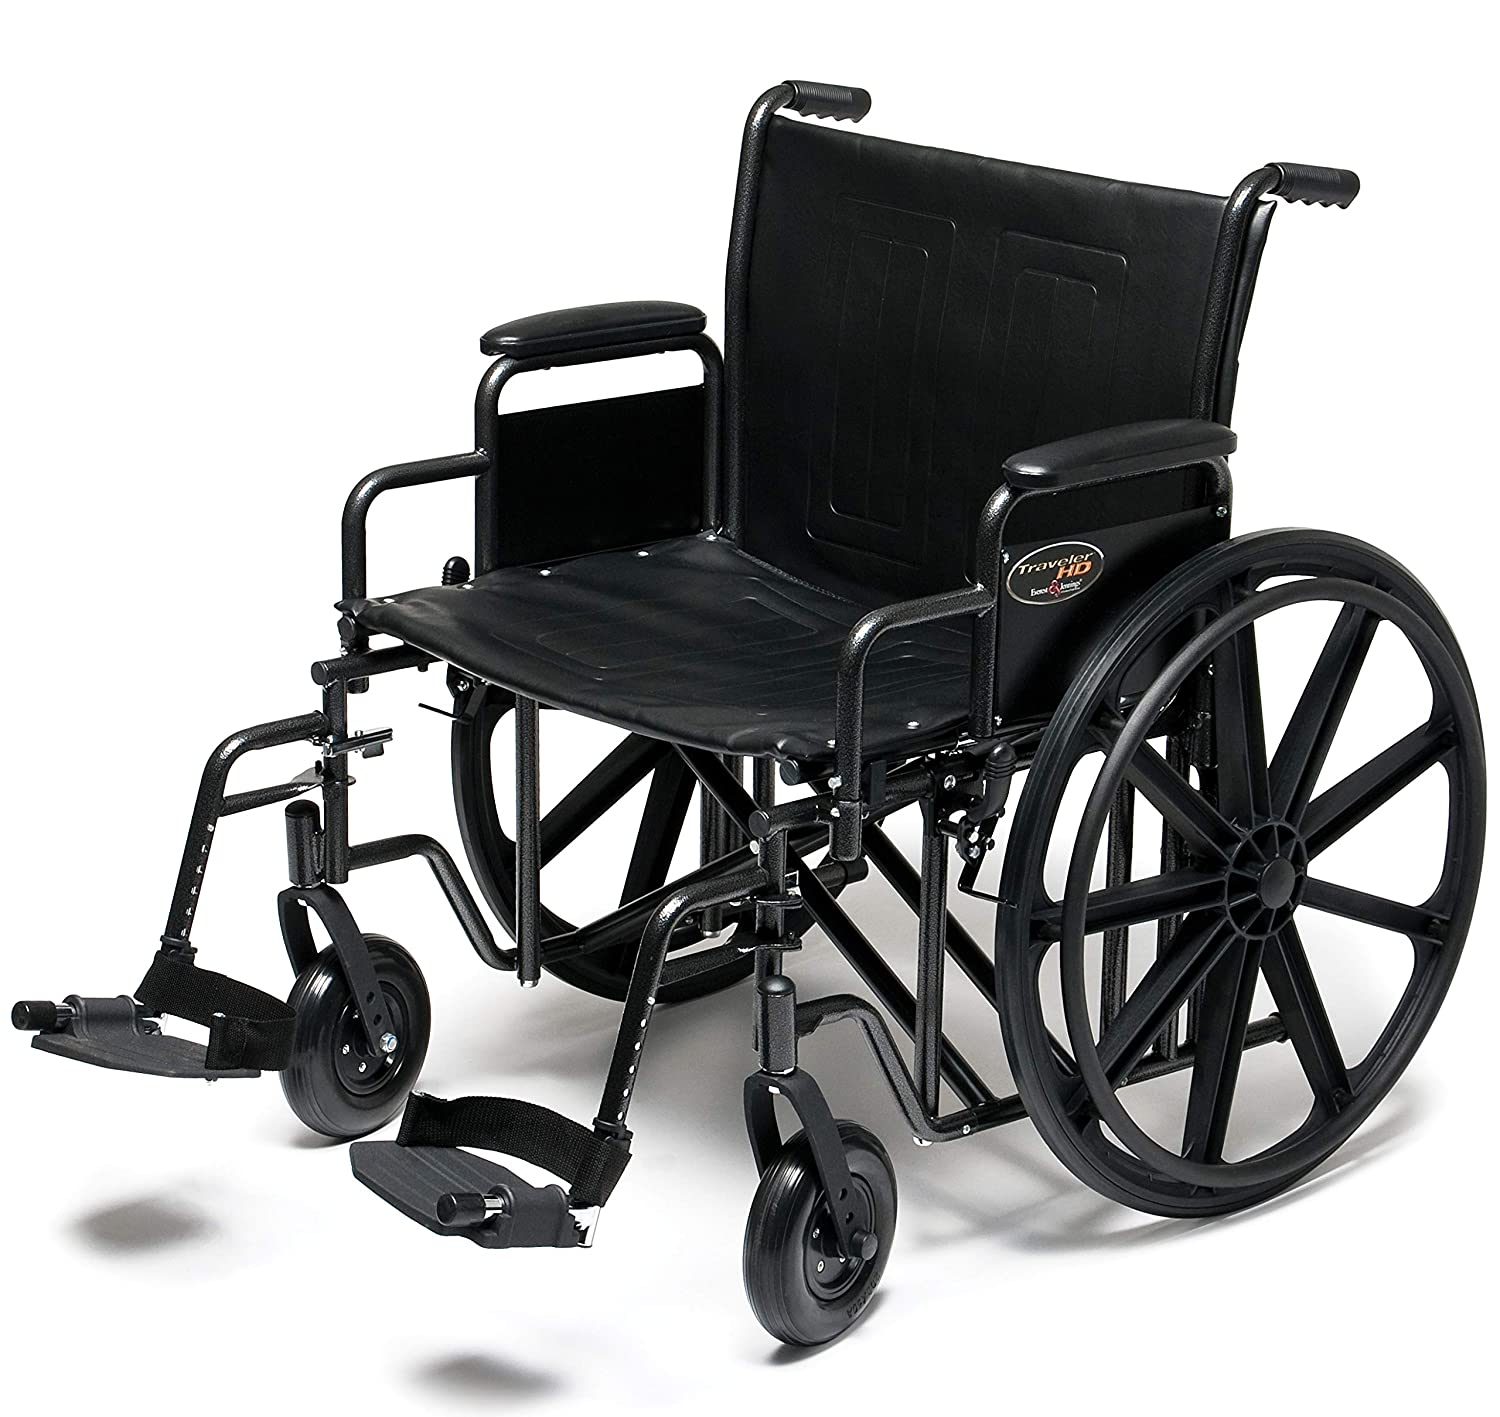 "Graham-Field Everest & Jennings Traveler HD Wheelchair, Detachable Desk Arms & Swingaway Footrests, 20"" Seat, Silvervein Color 81VBXtDwjXL._SL1500_"